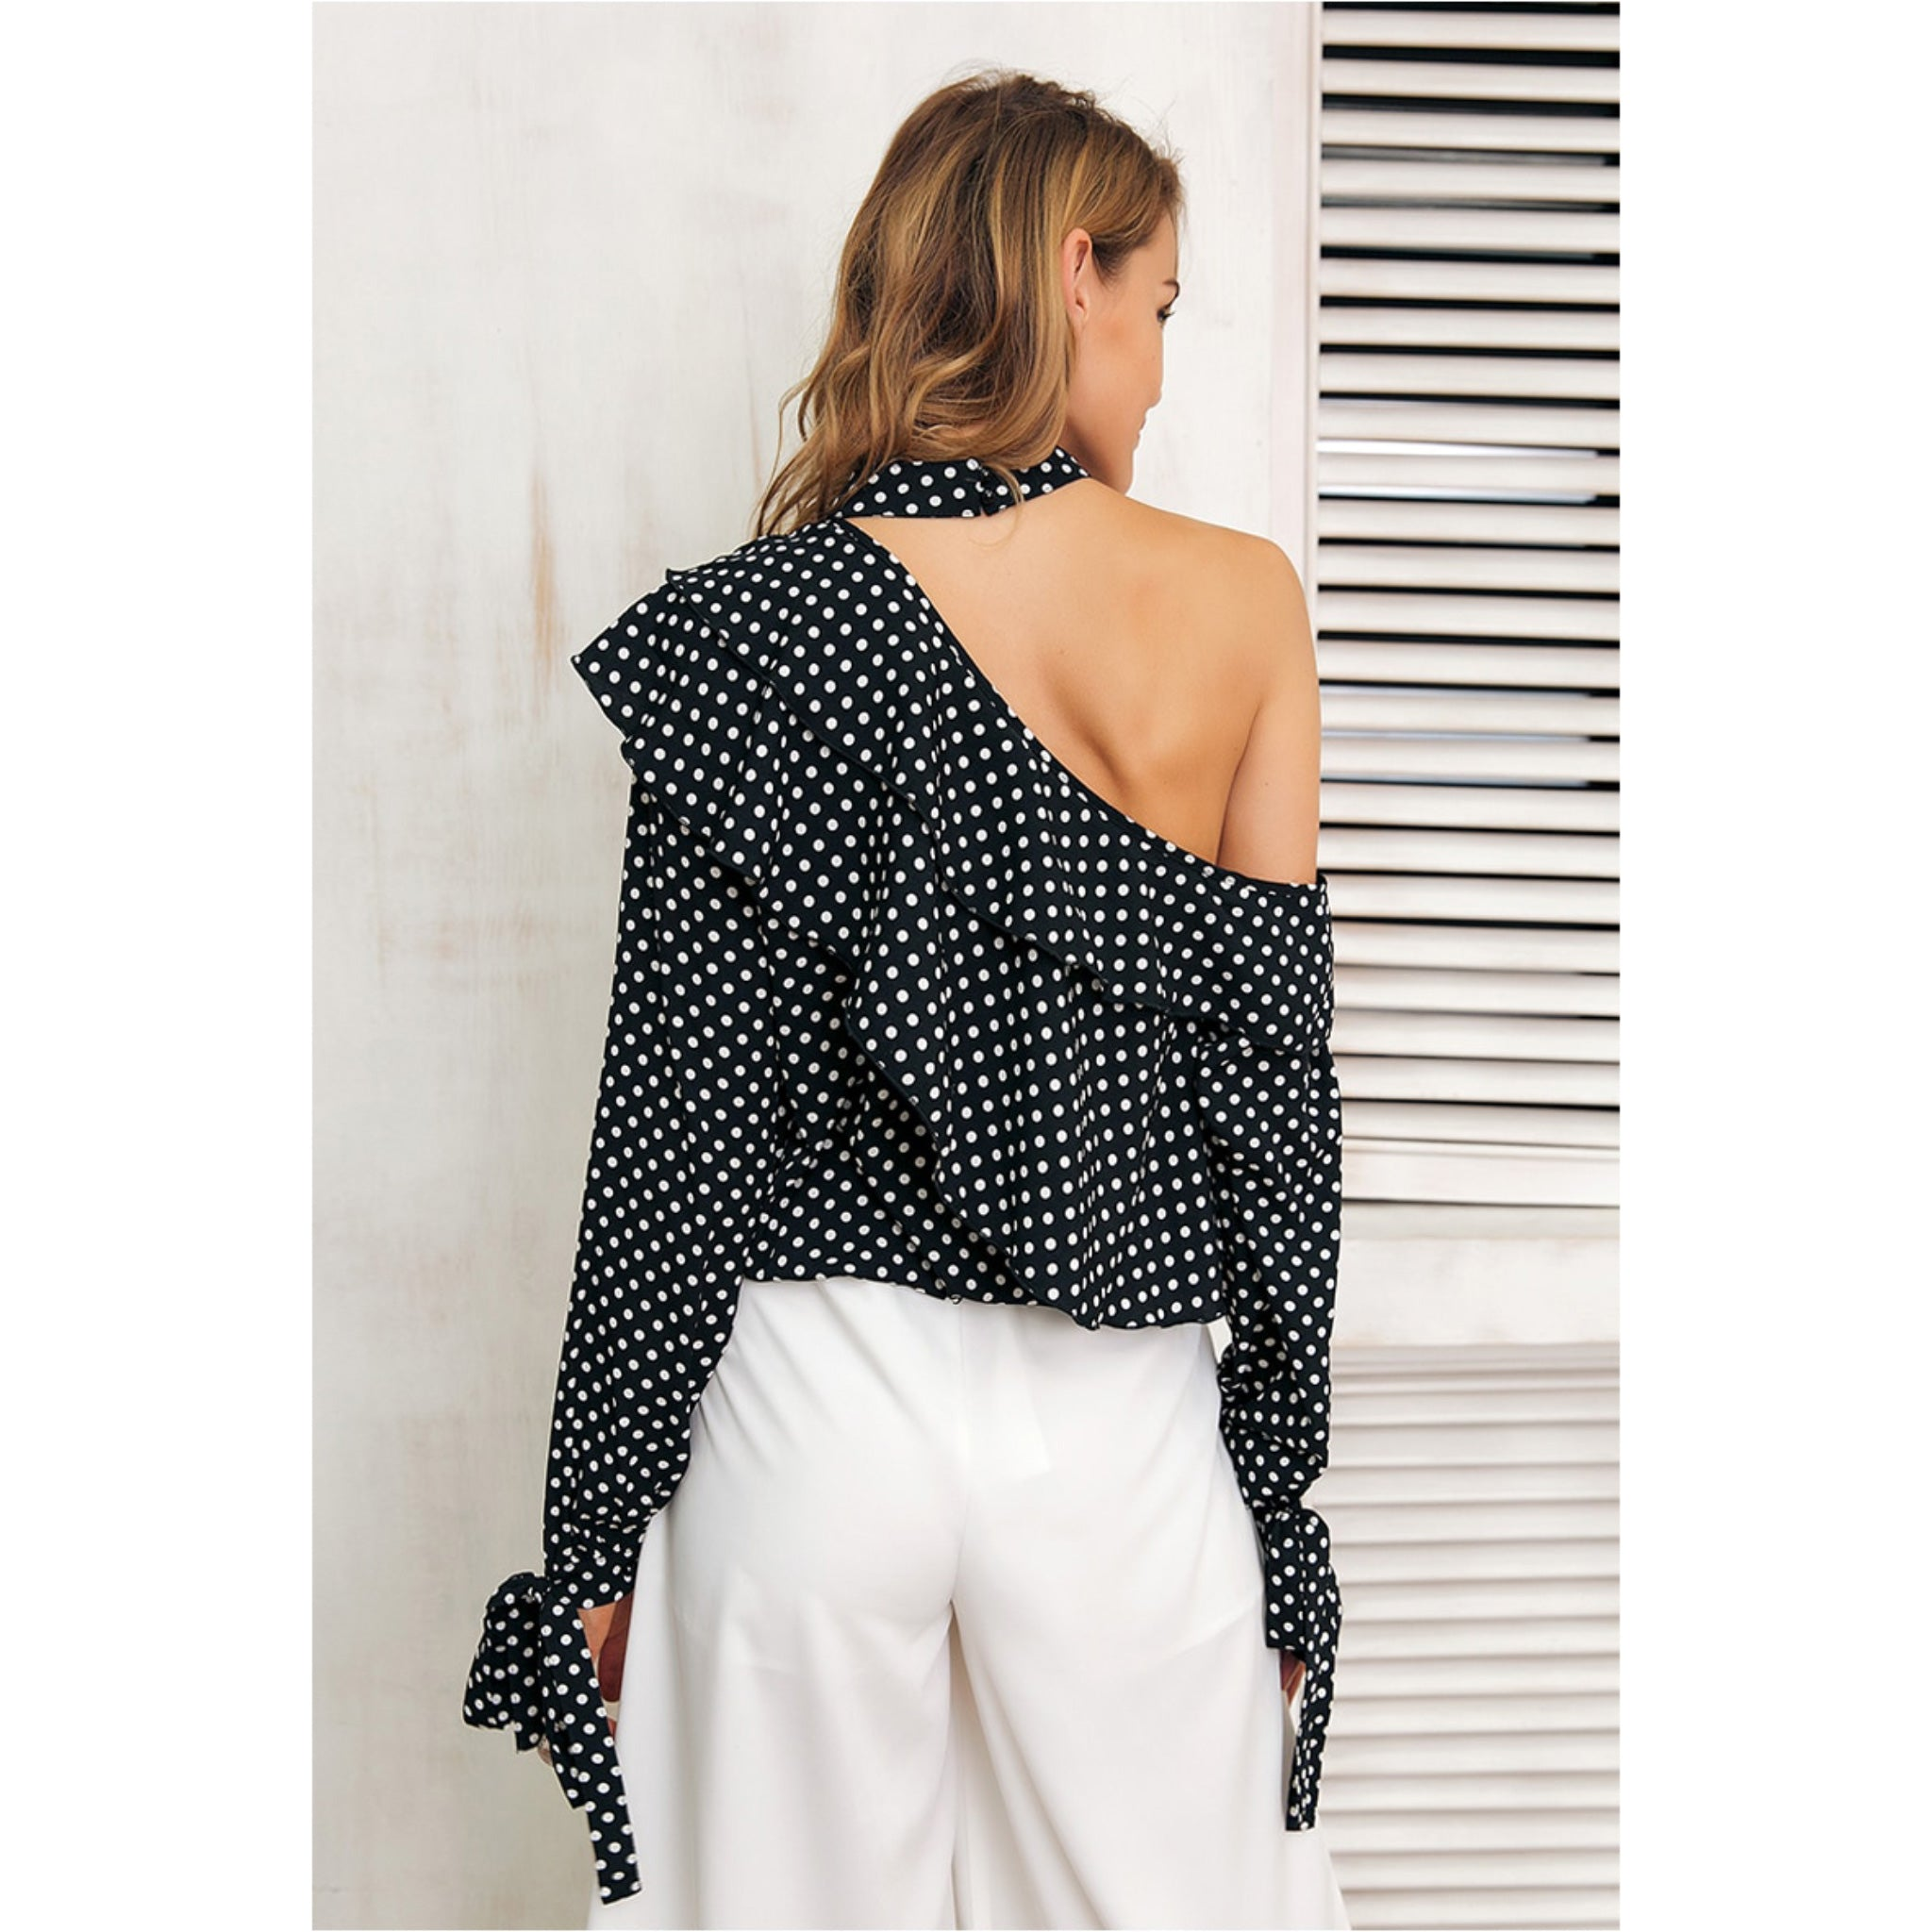 Polka Dot Choker Blouse with Cold Shoulder, ruffles and lantern sleeves with bows on the cuffs